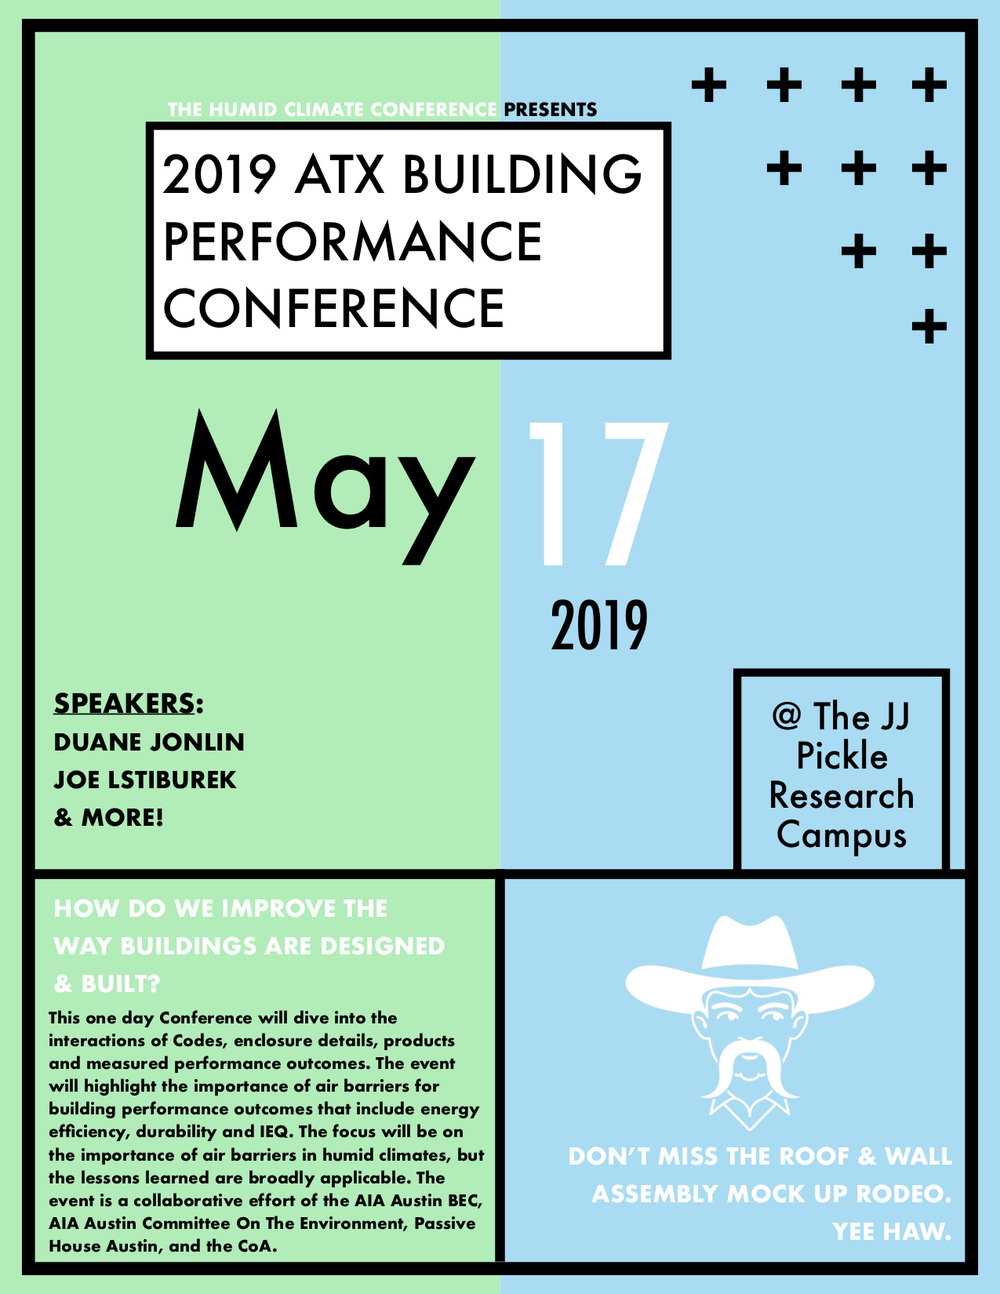 2019 ATX Building Performance Conference